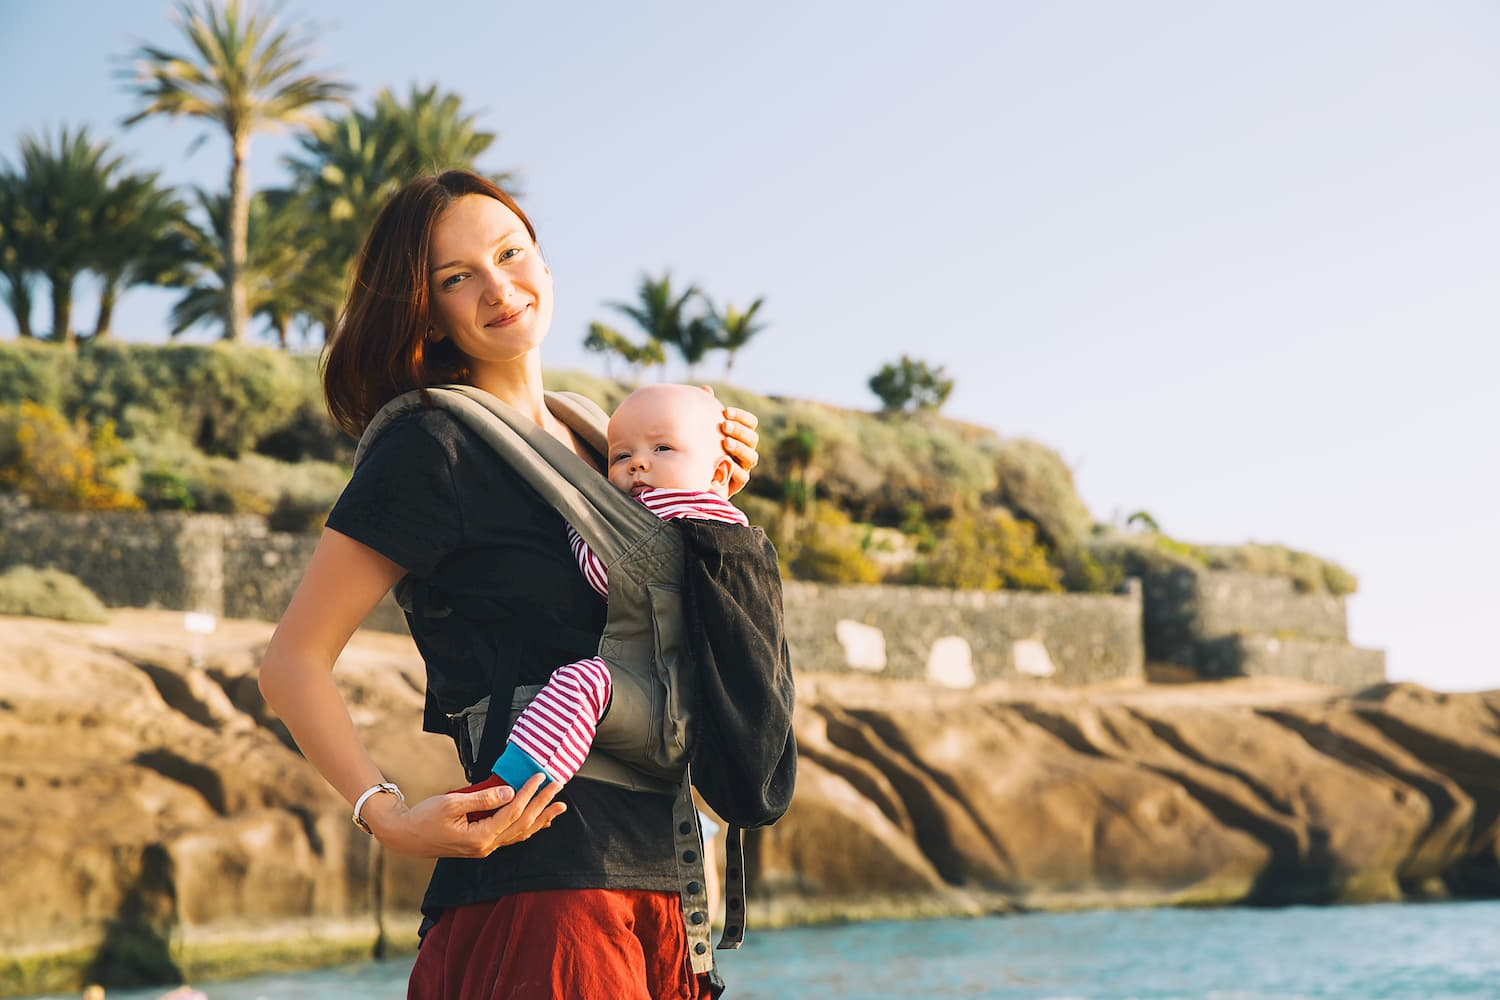 Mother with a baby in a baby carrier on the coast of ocean